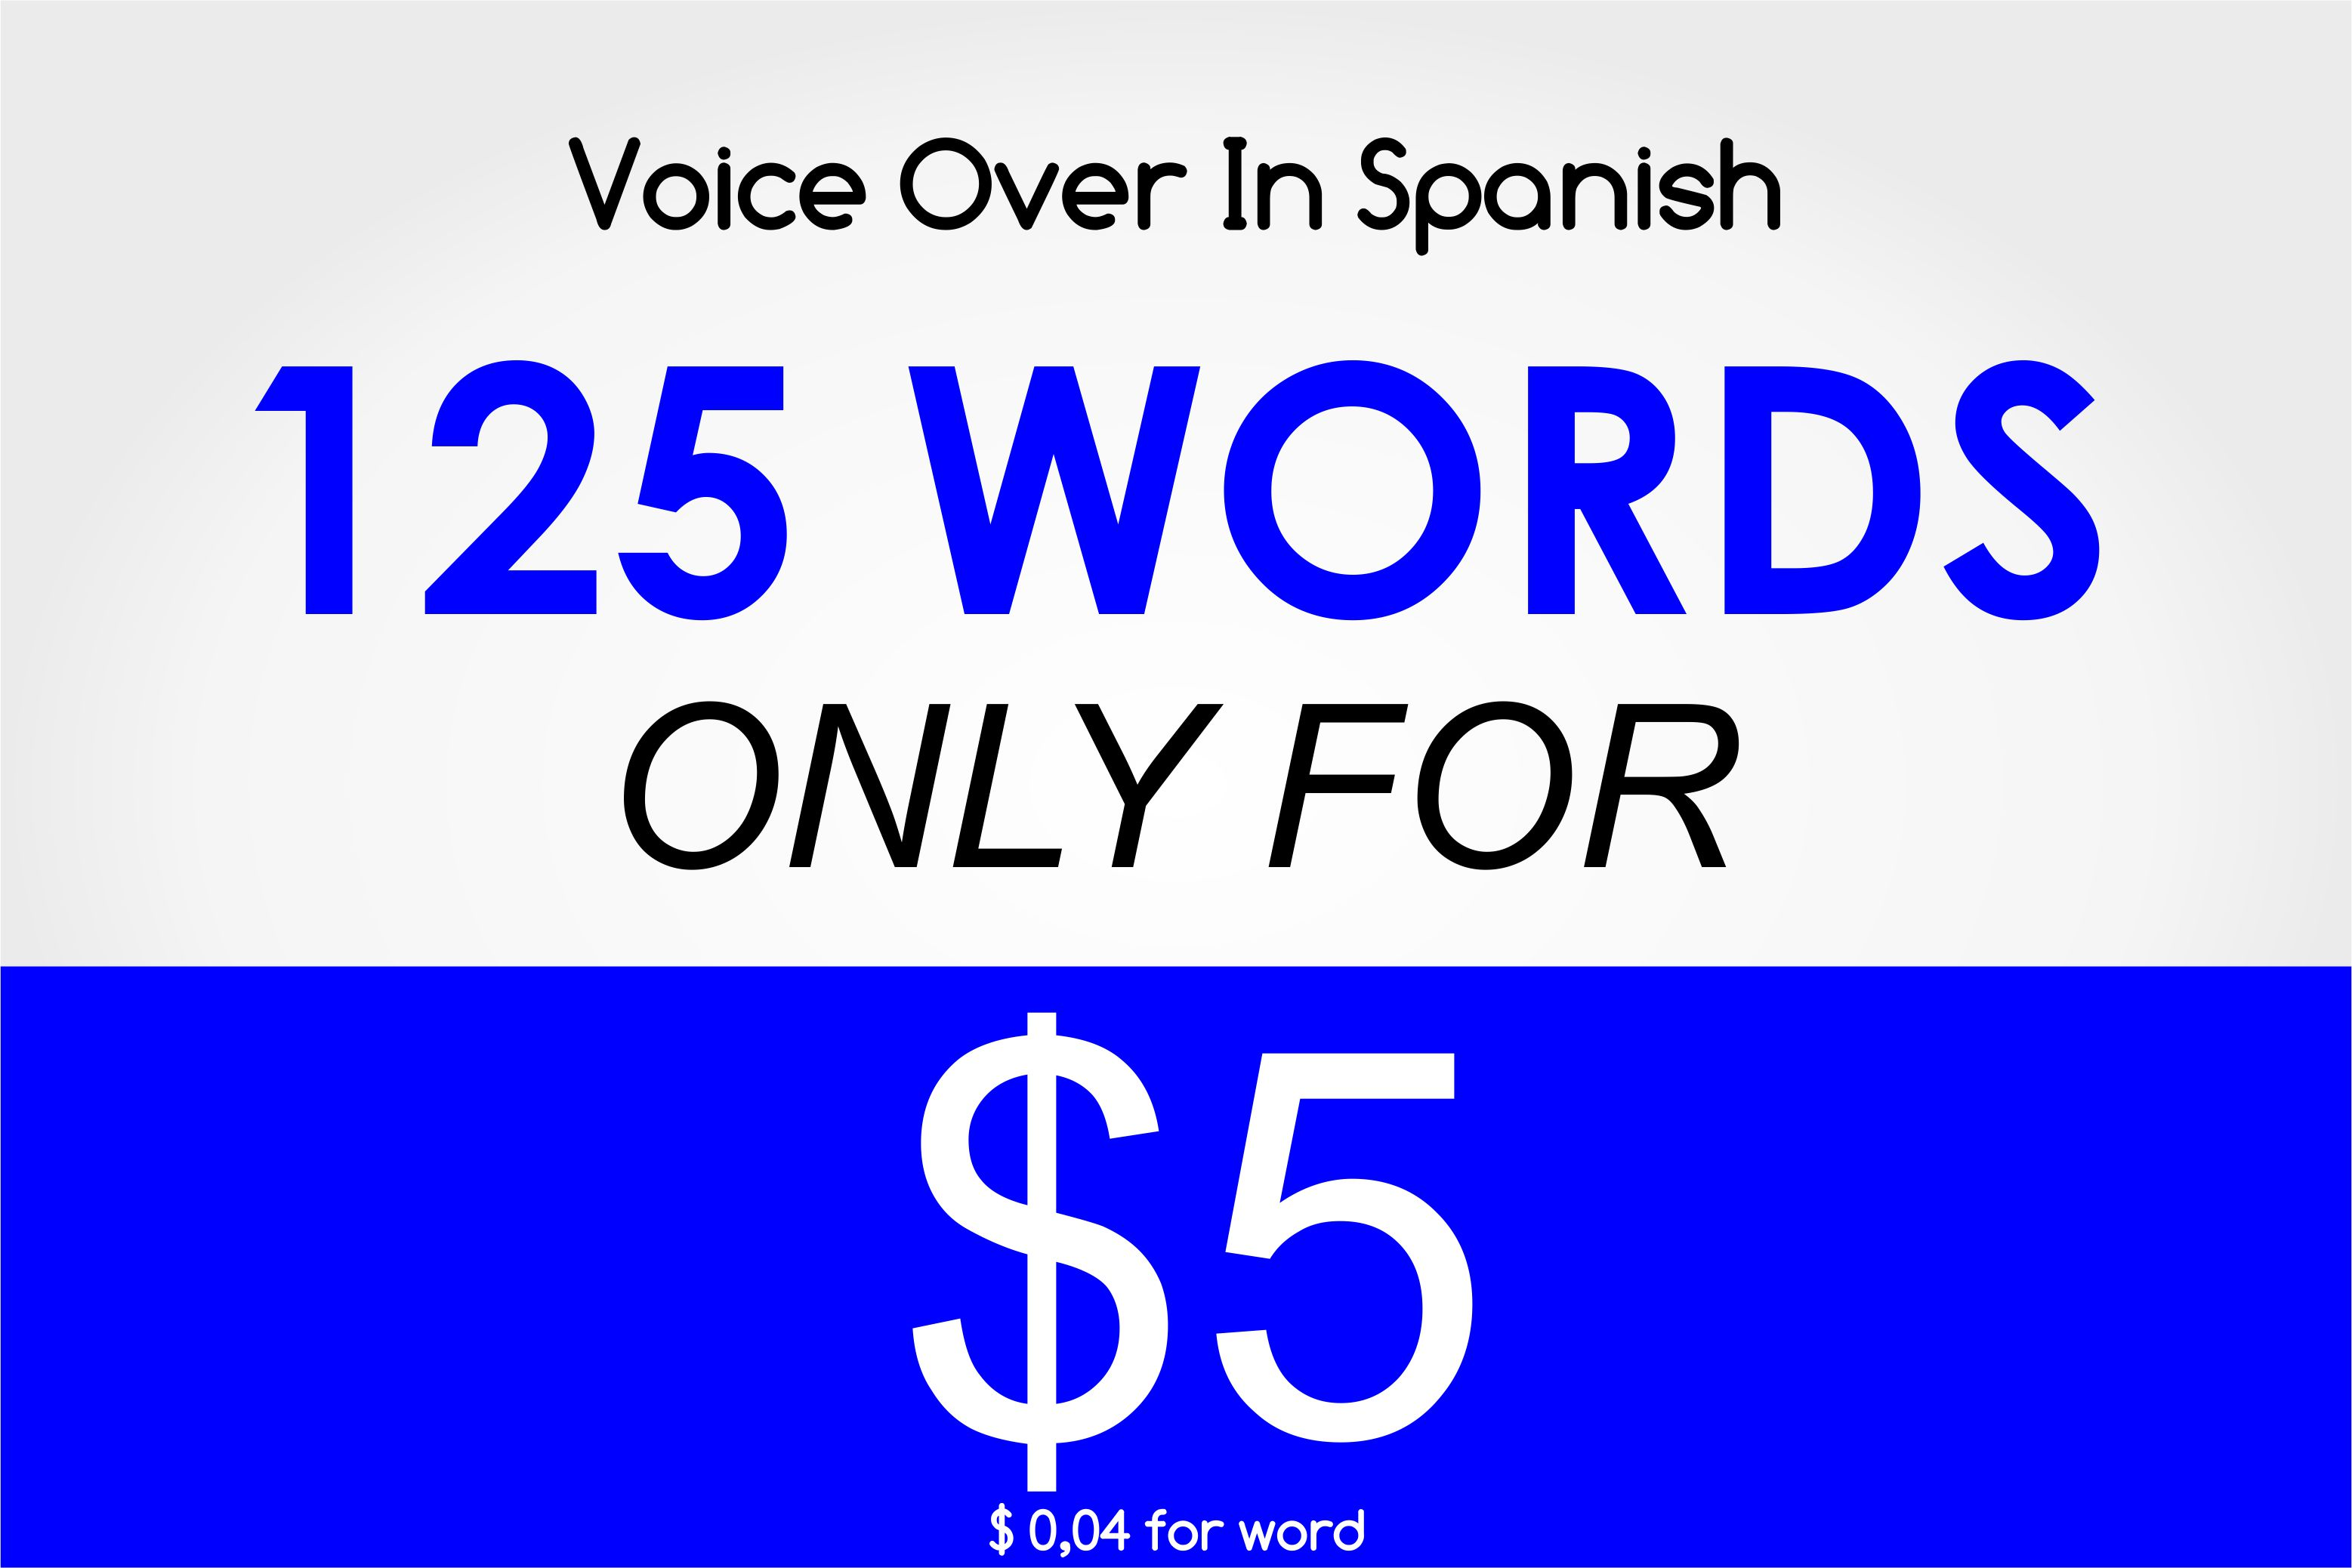 Voice Over In Spanish